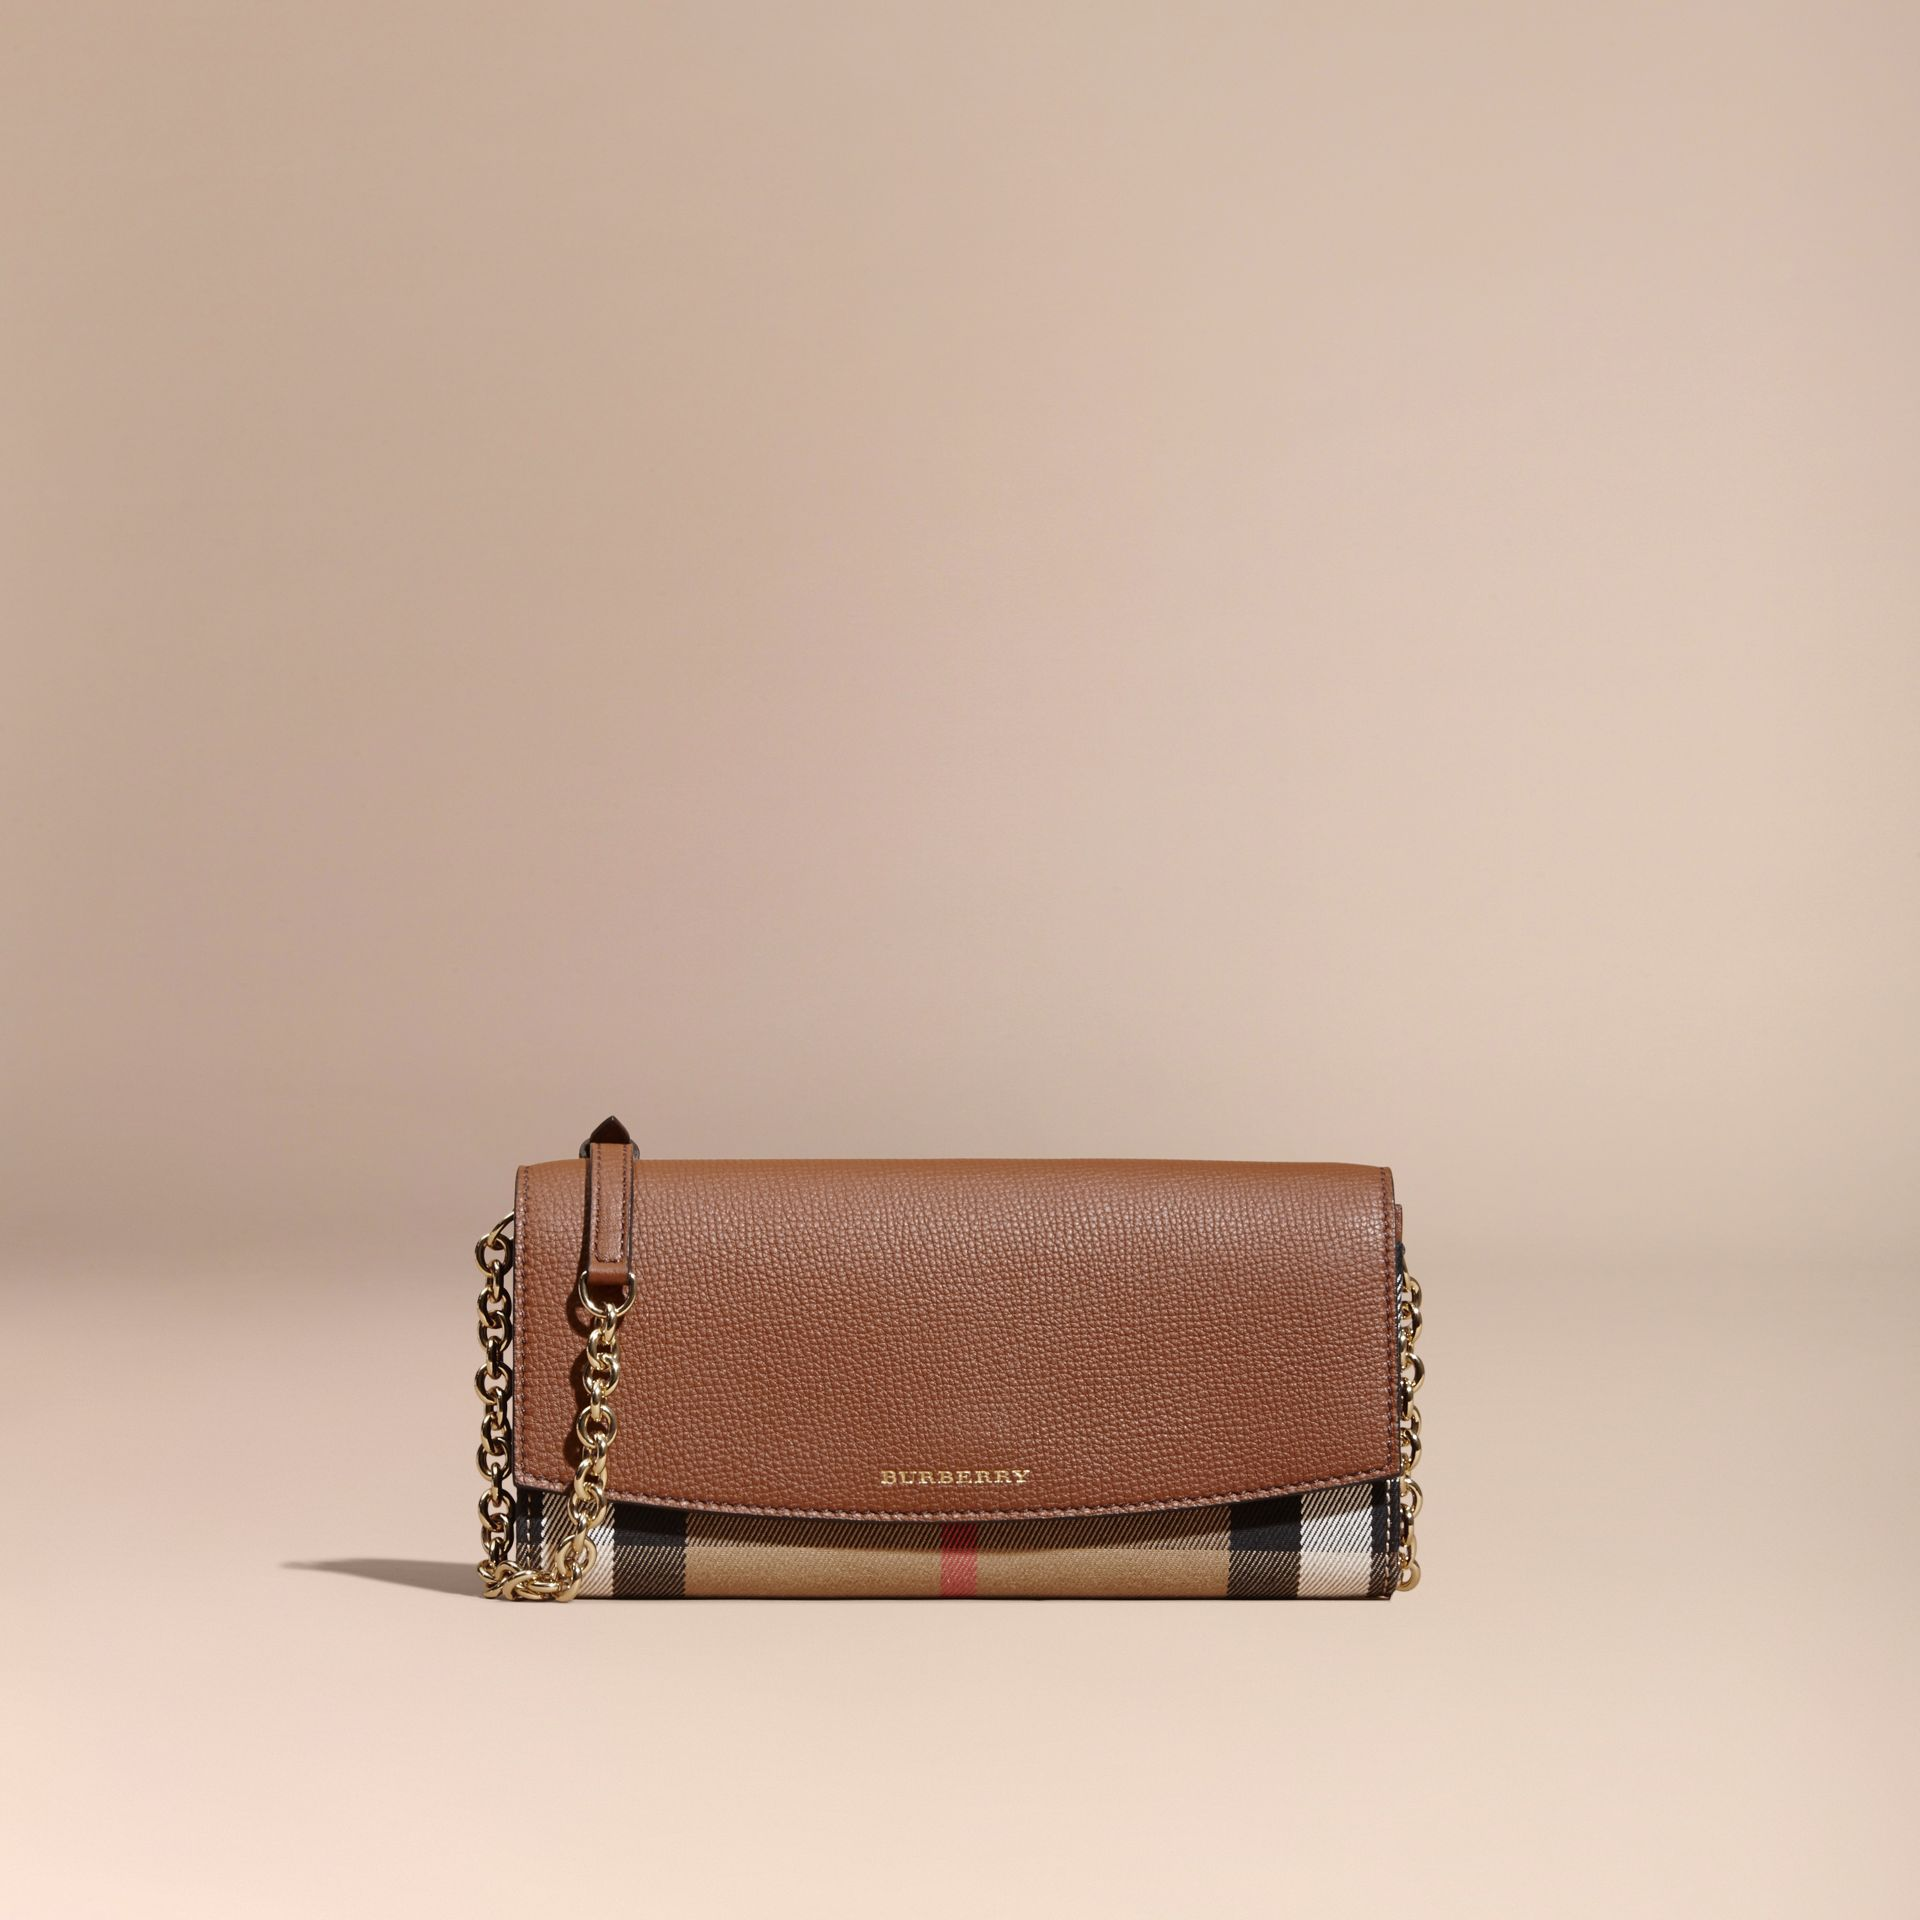 House Check and Leather Wallet with Chain in Tan - Women | Burberry - gallery image 8